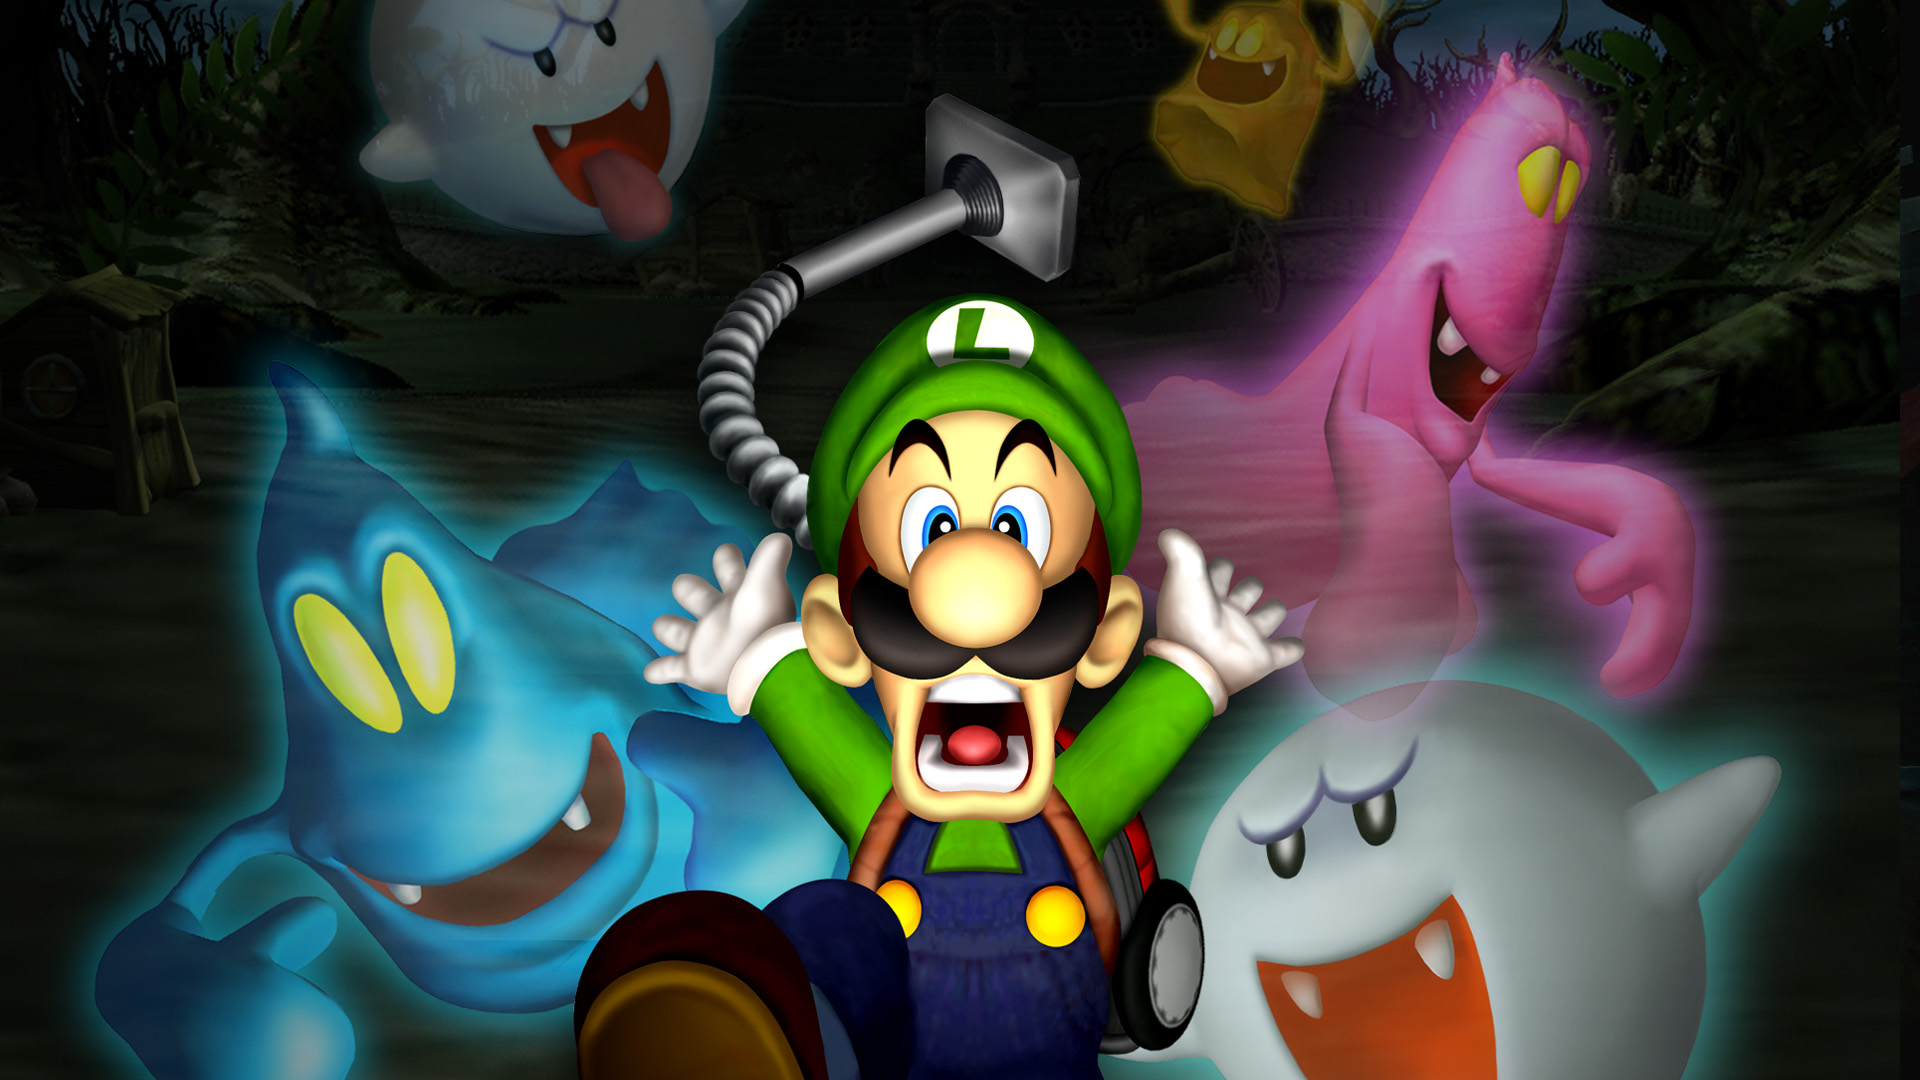 Luigi S Mansion Hd Wallpaper Background Image 1920x1080 Id